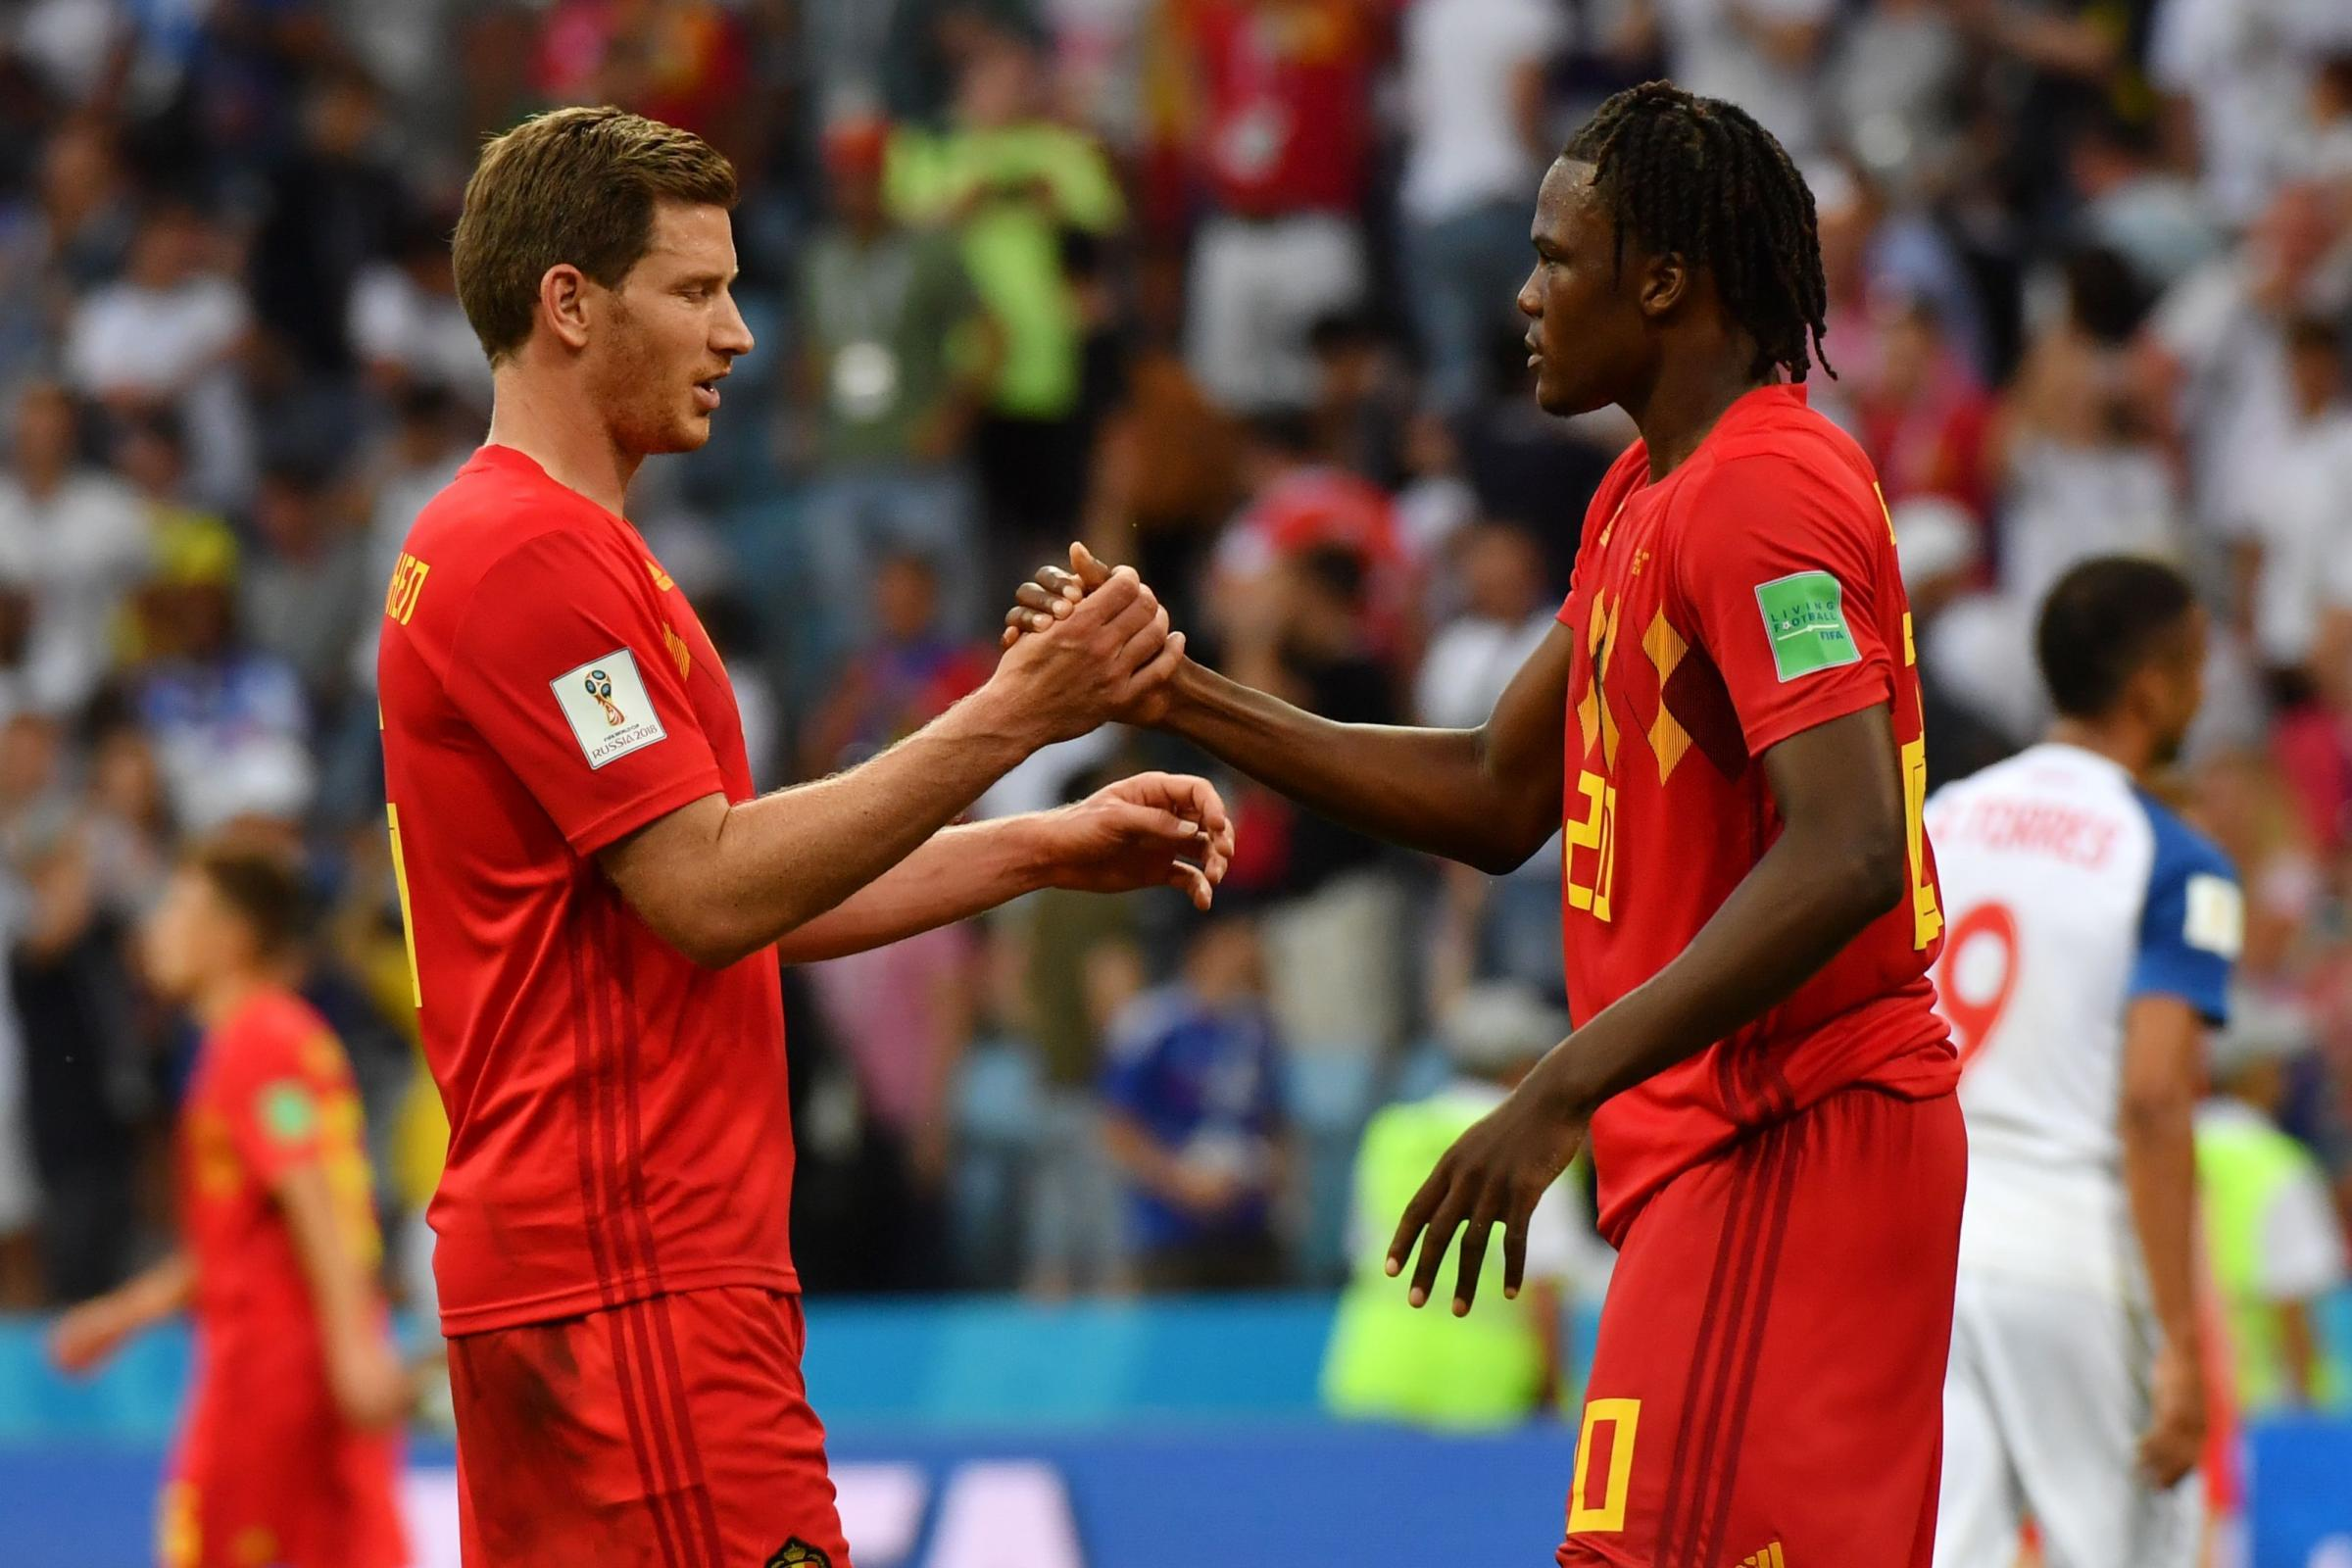 Jan Vertonghen shakes hands with Dedryck Boyata